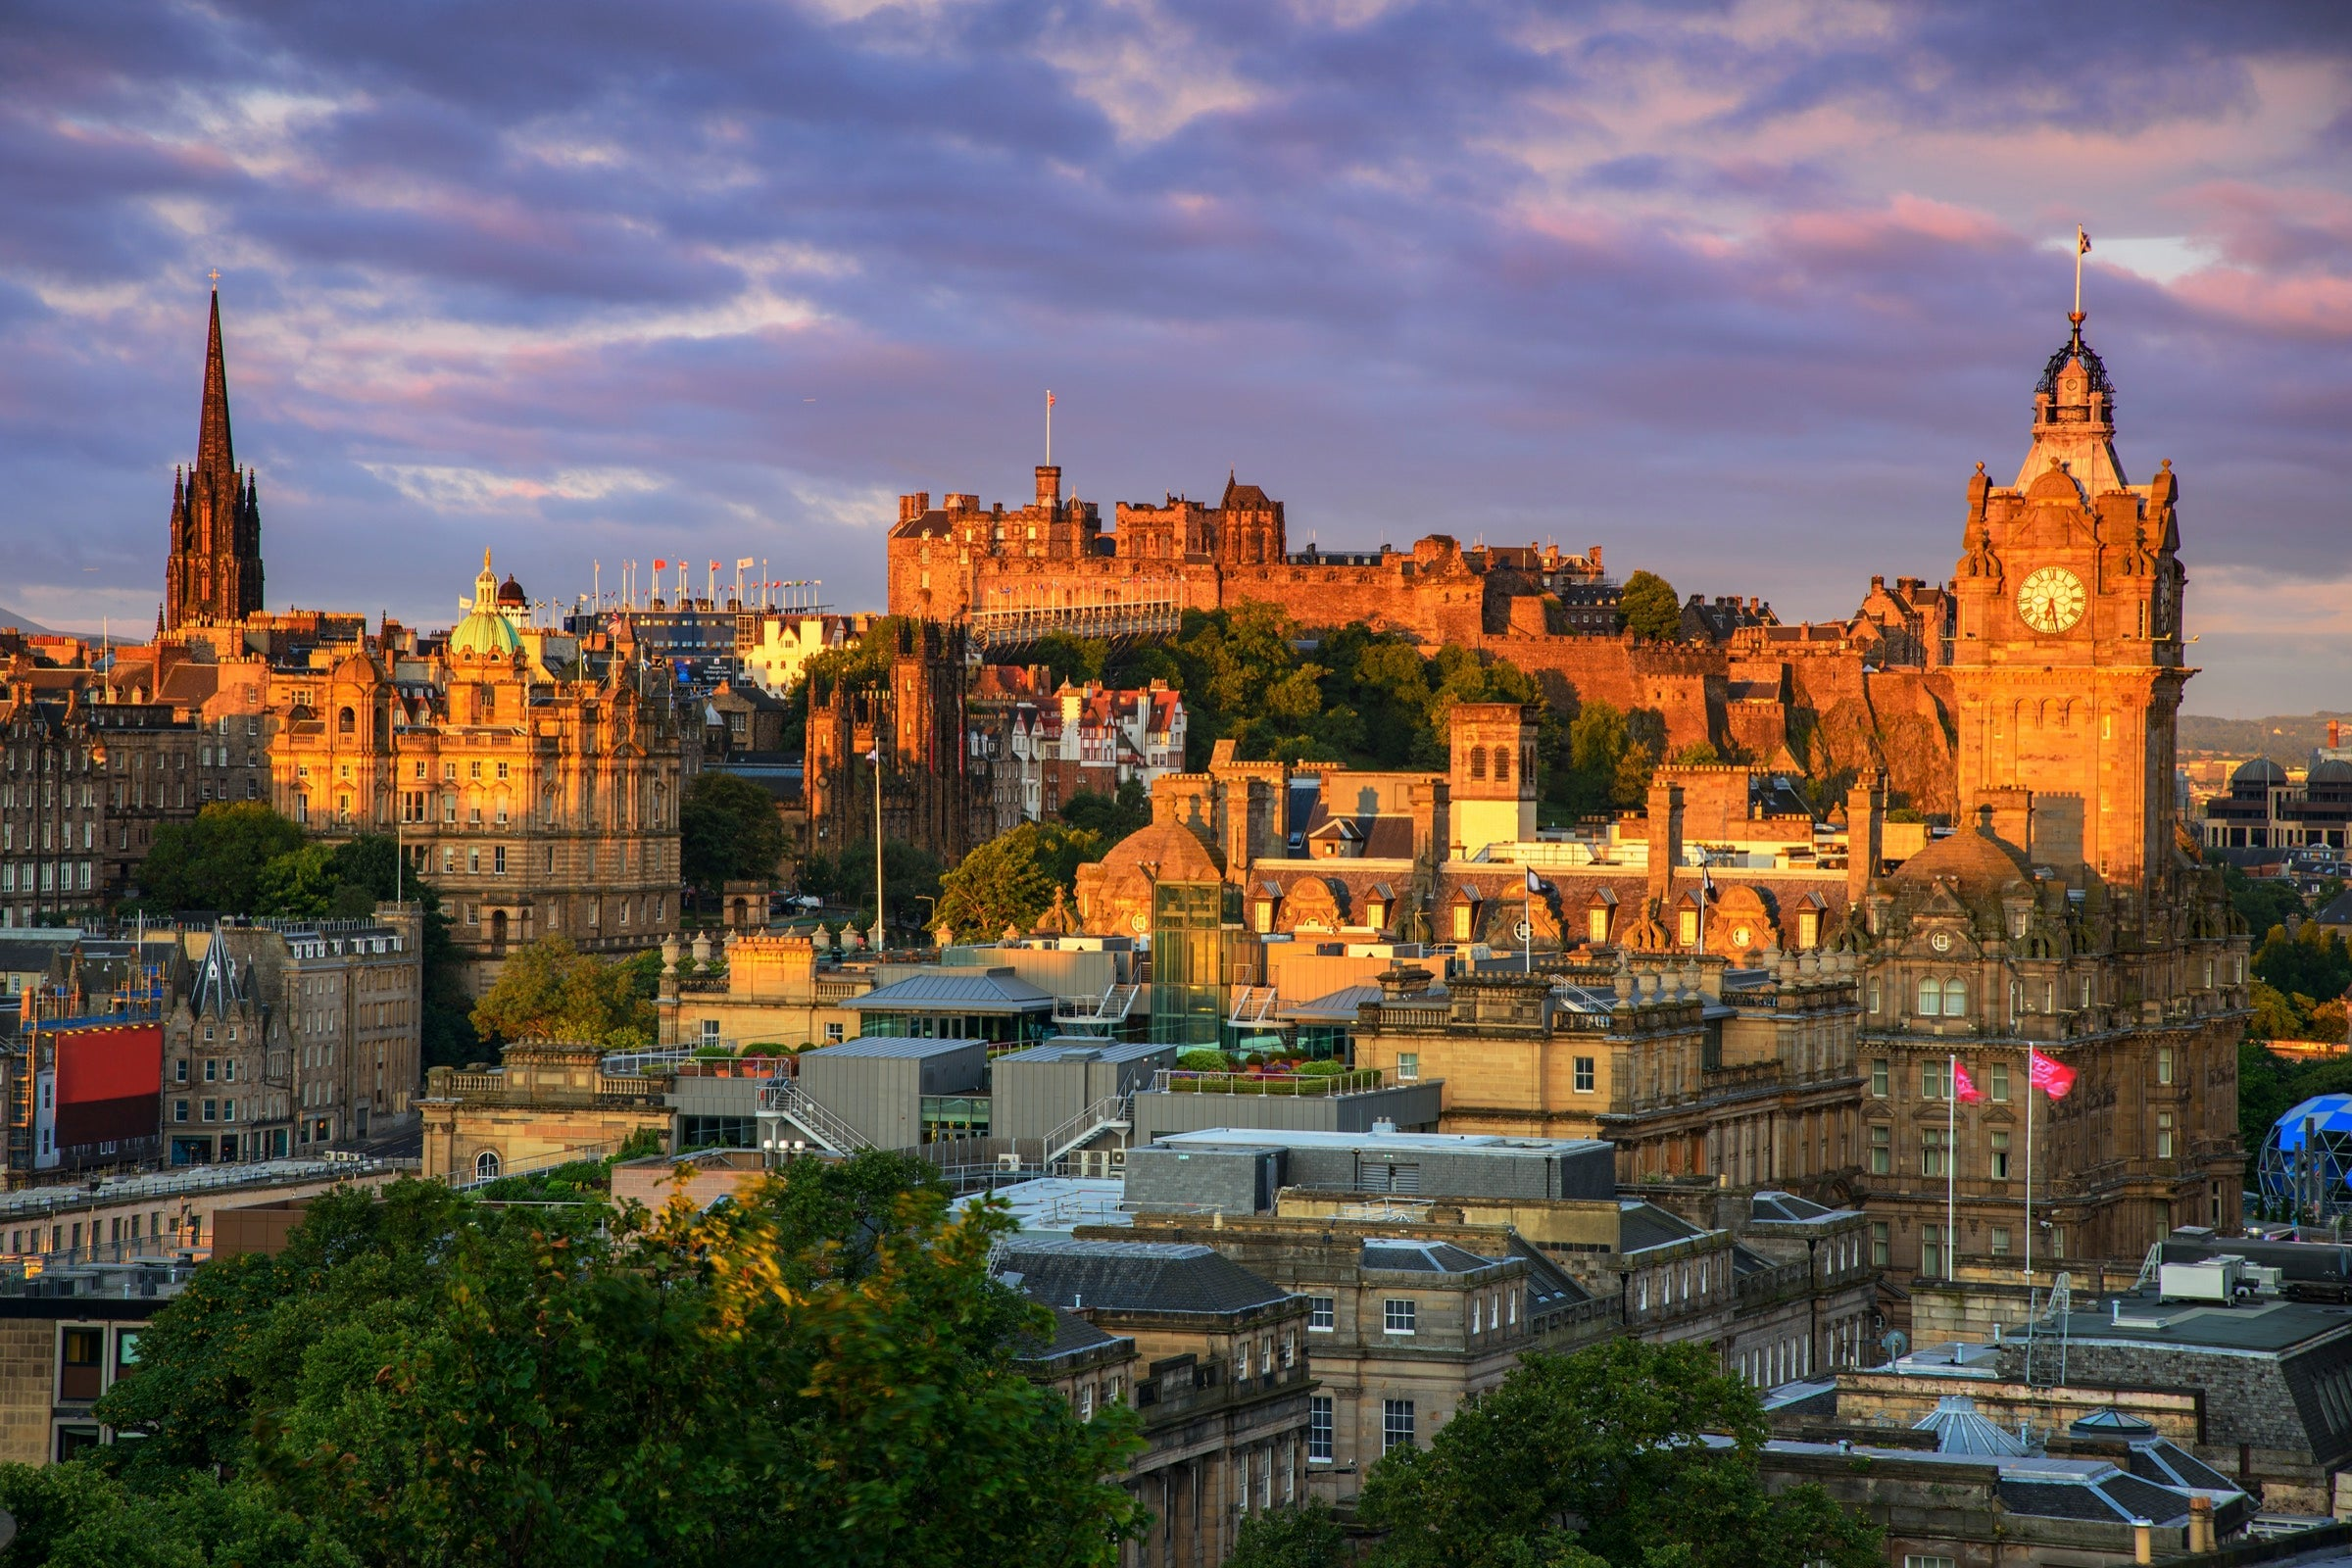 Cleared for Takeoff: A couple's trip from Detroit to Edinburgh with limited points - The Points Guy